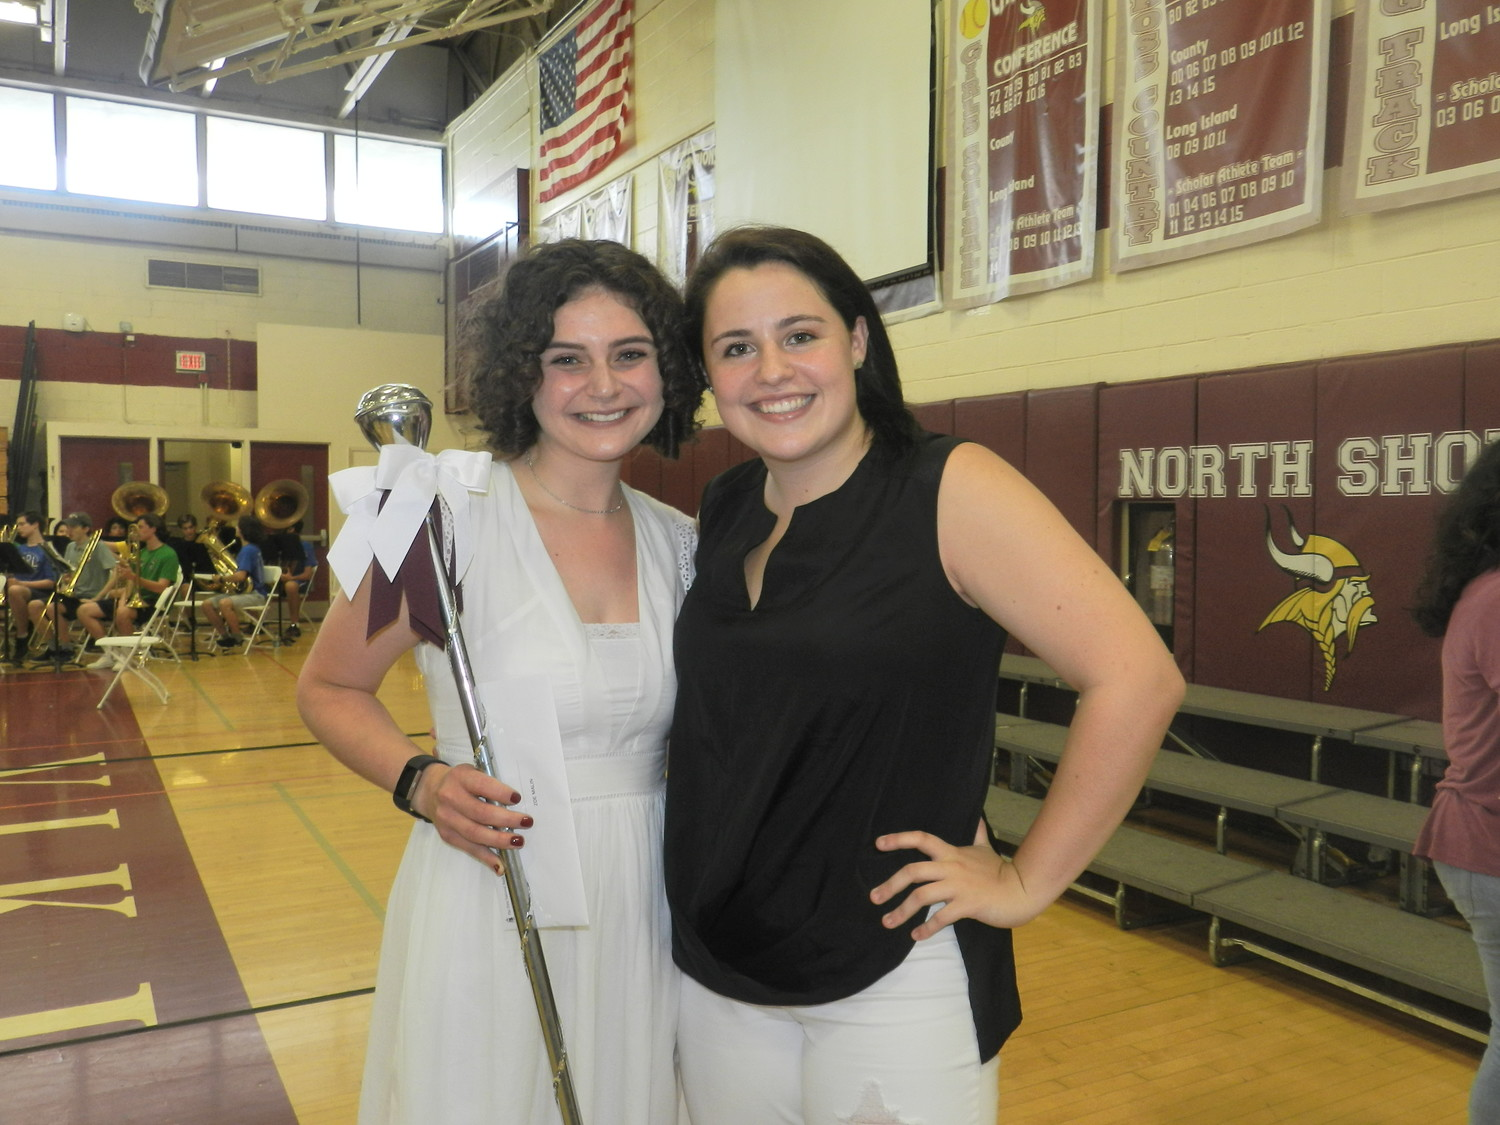 Sea Cliff resident Zoe Malin, left, received the Faculty Honor Award from former North Shore graduate Frankie-Lynne Conklin.